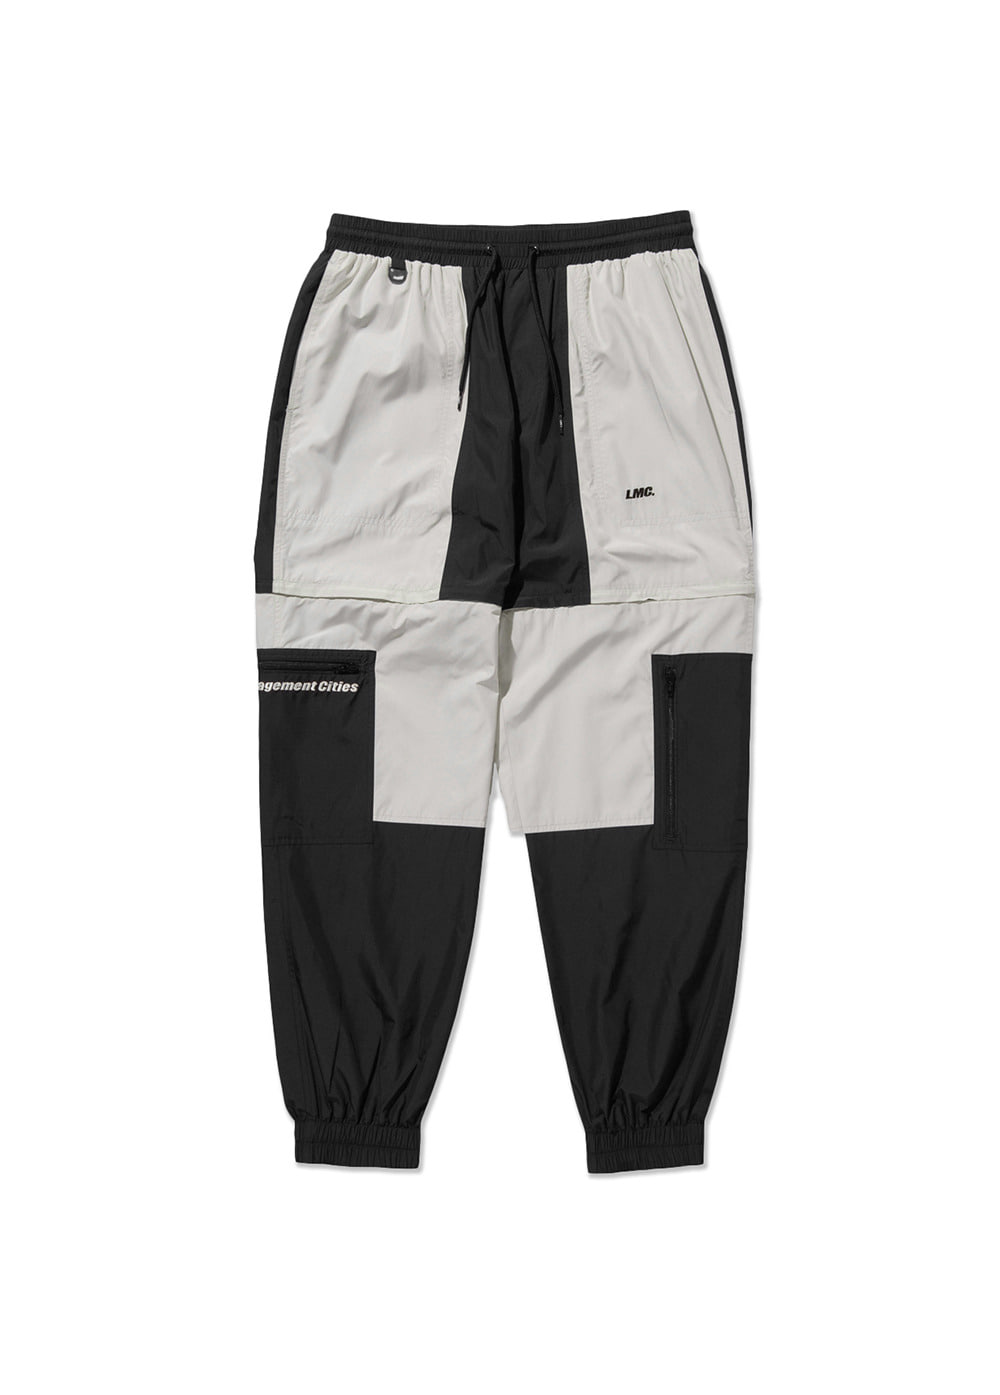 LMC PARACHUTE TRANSFORM PANTS black